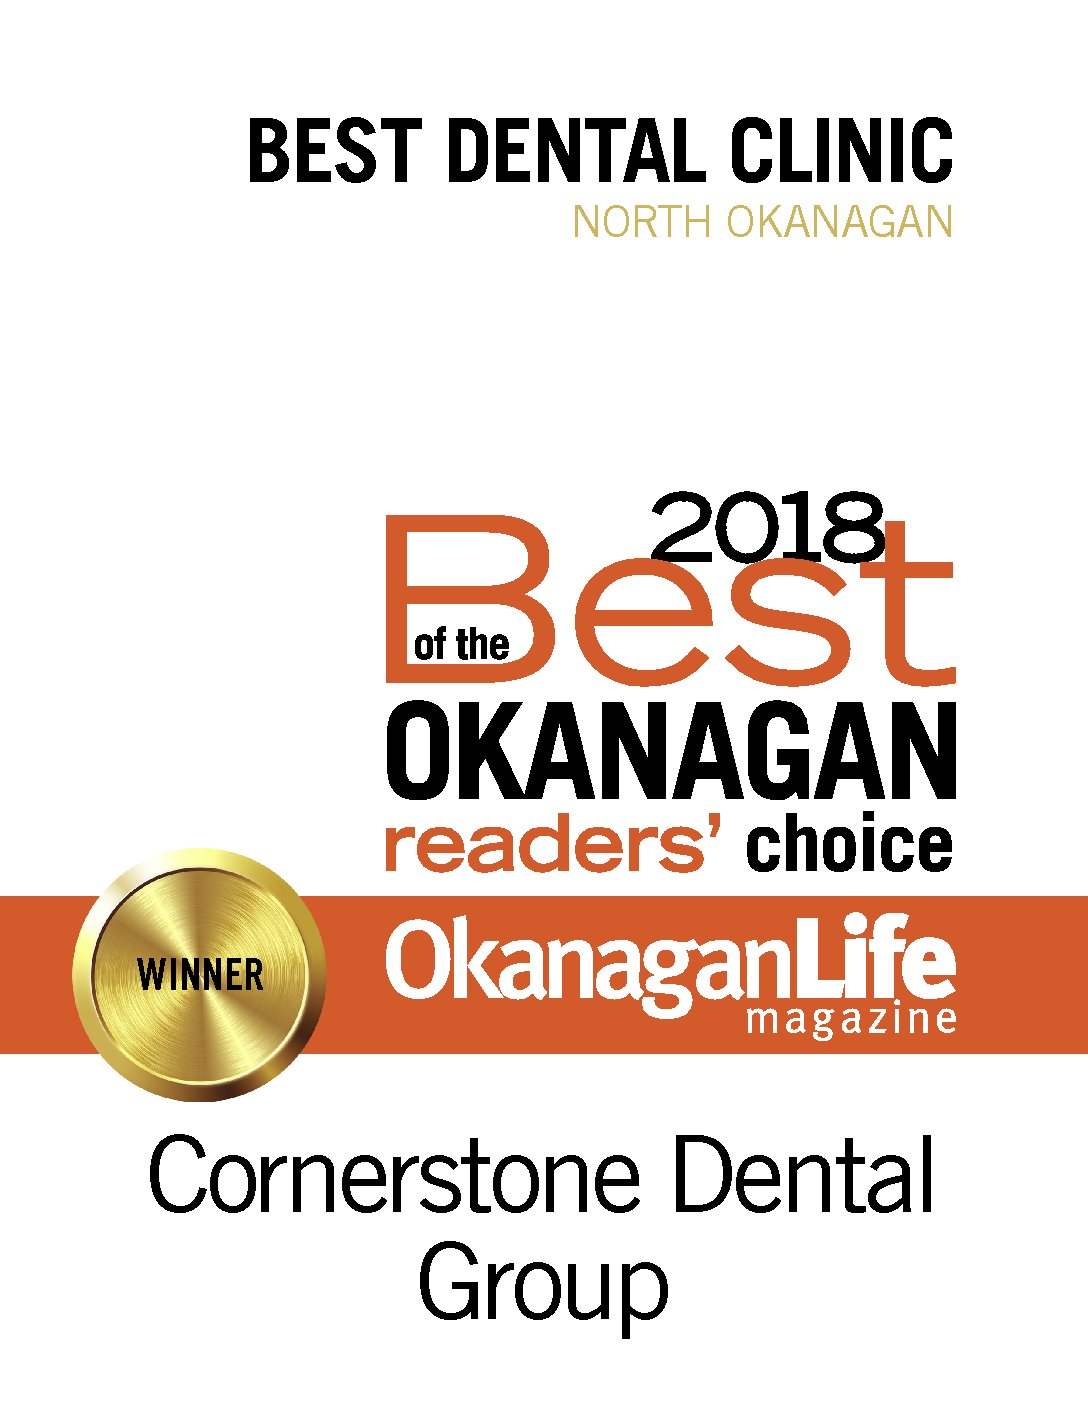 Cornerstone Dental Group